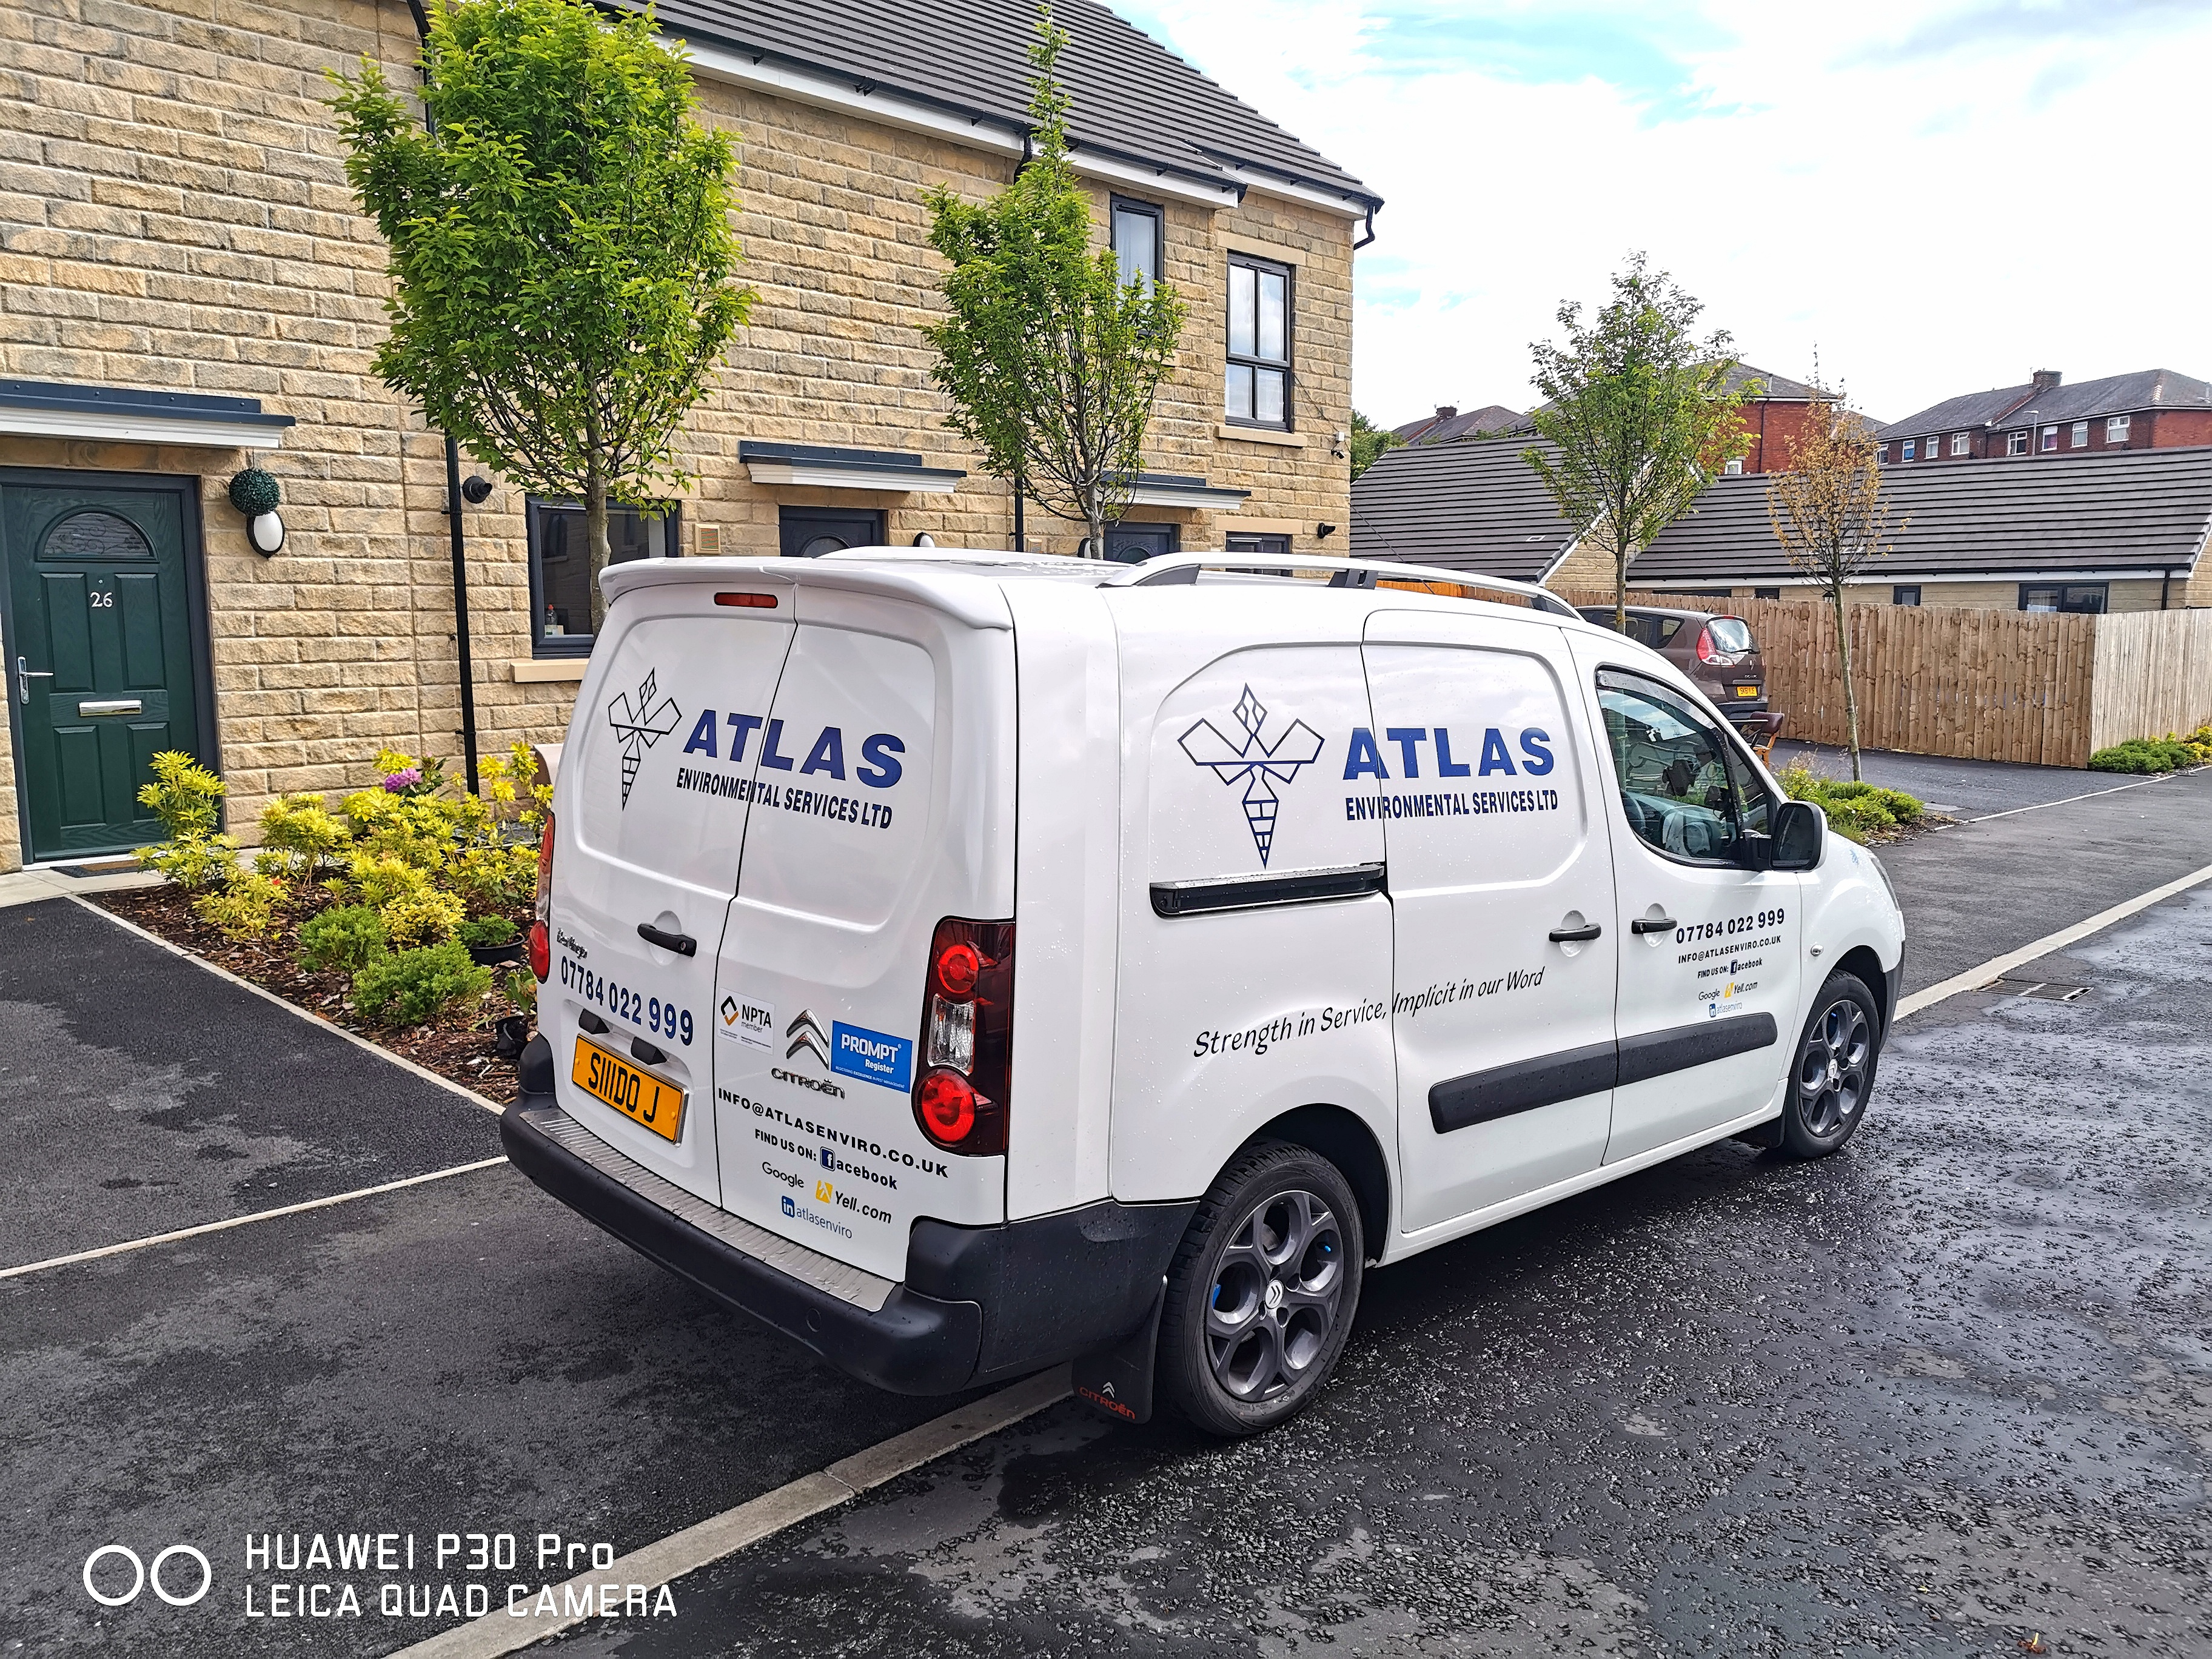 pest-control-Nelson-Colne-accrington-burnley-east-lancashire-pest-control-services-commercial-pest-s